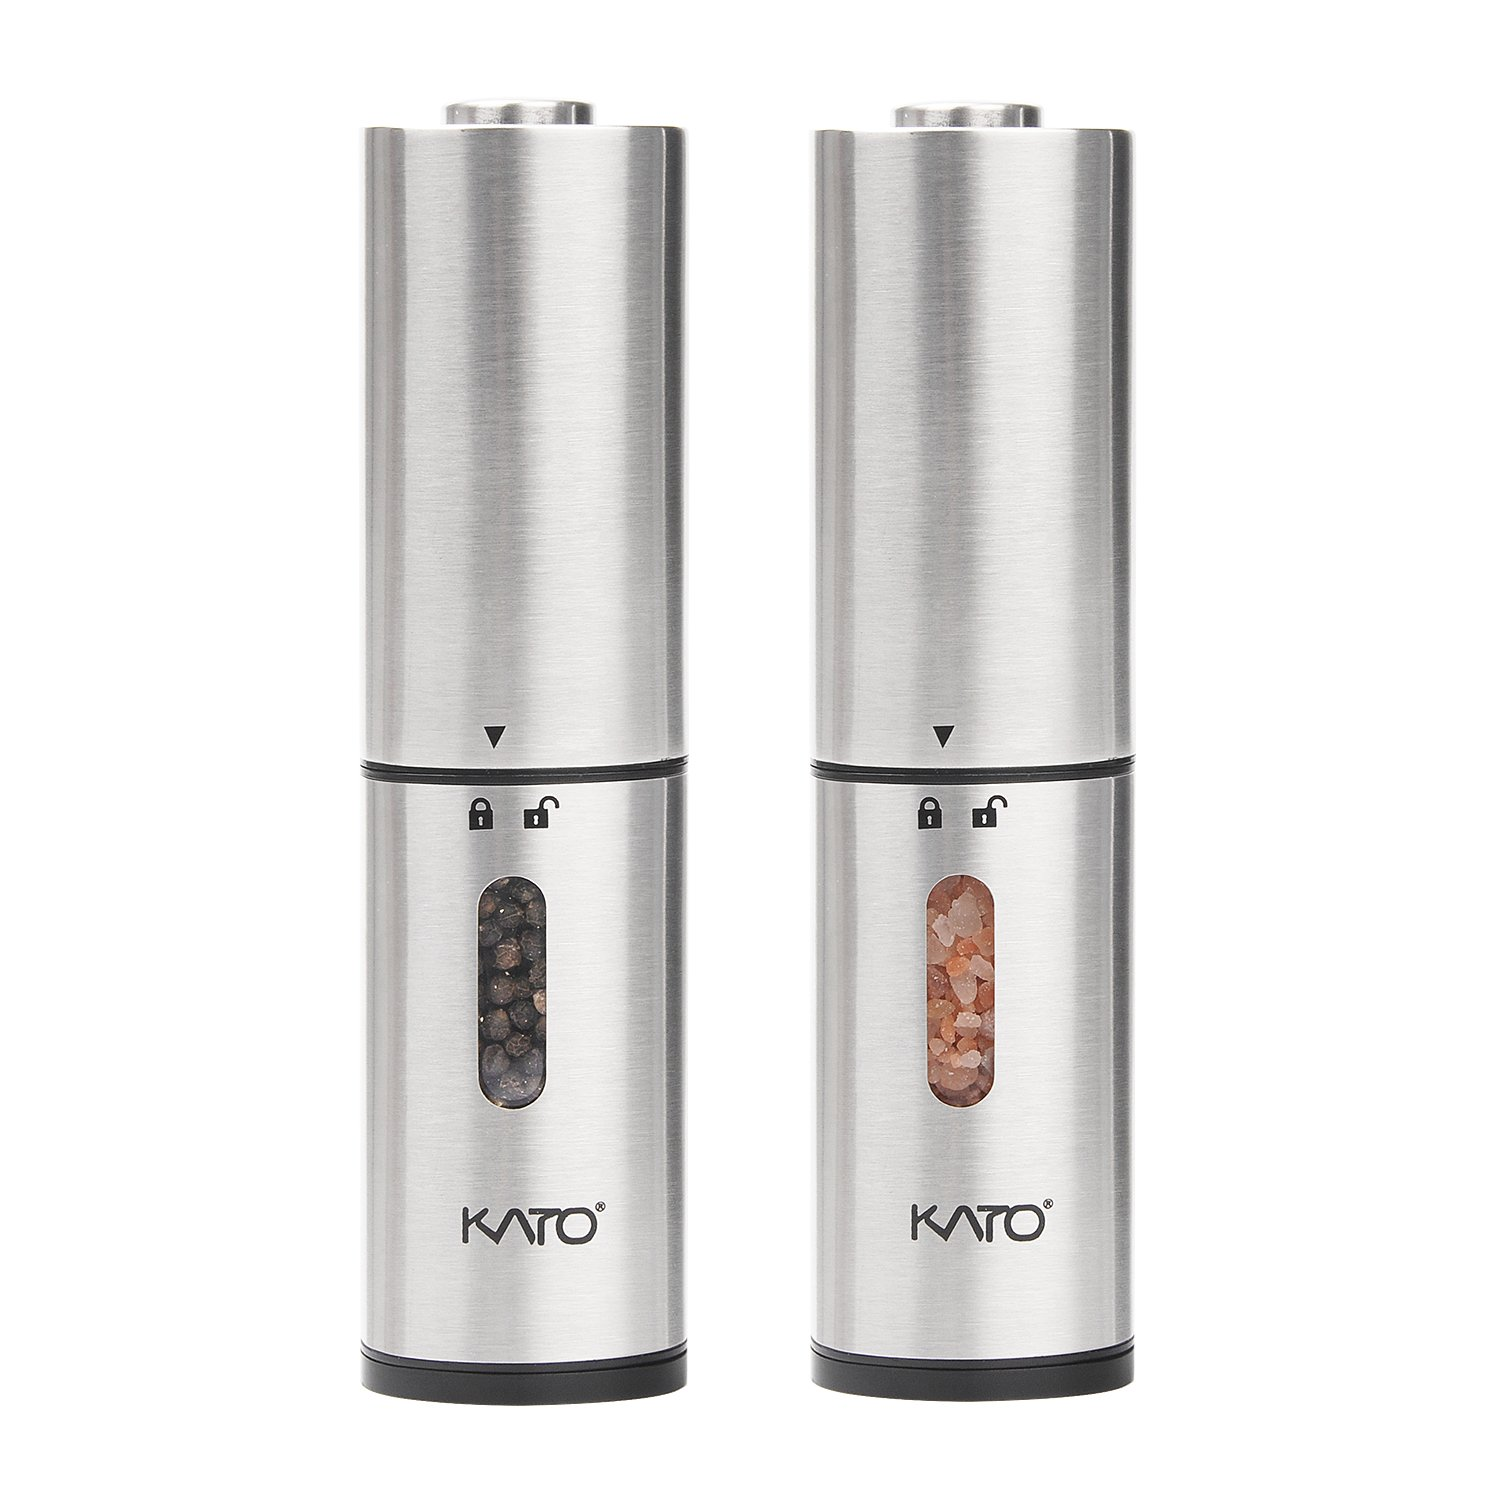 Kato Electric Salt and Pepper Grinders Set - Battery Operated, Stainless Steel, Automatic Pepper Shaker Mill with Led Light and Adjustable Coarseness for Flavor & Seasoning, Pack of 2 by Kato